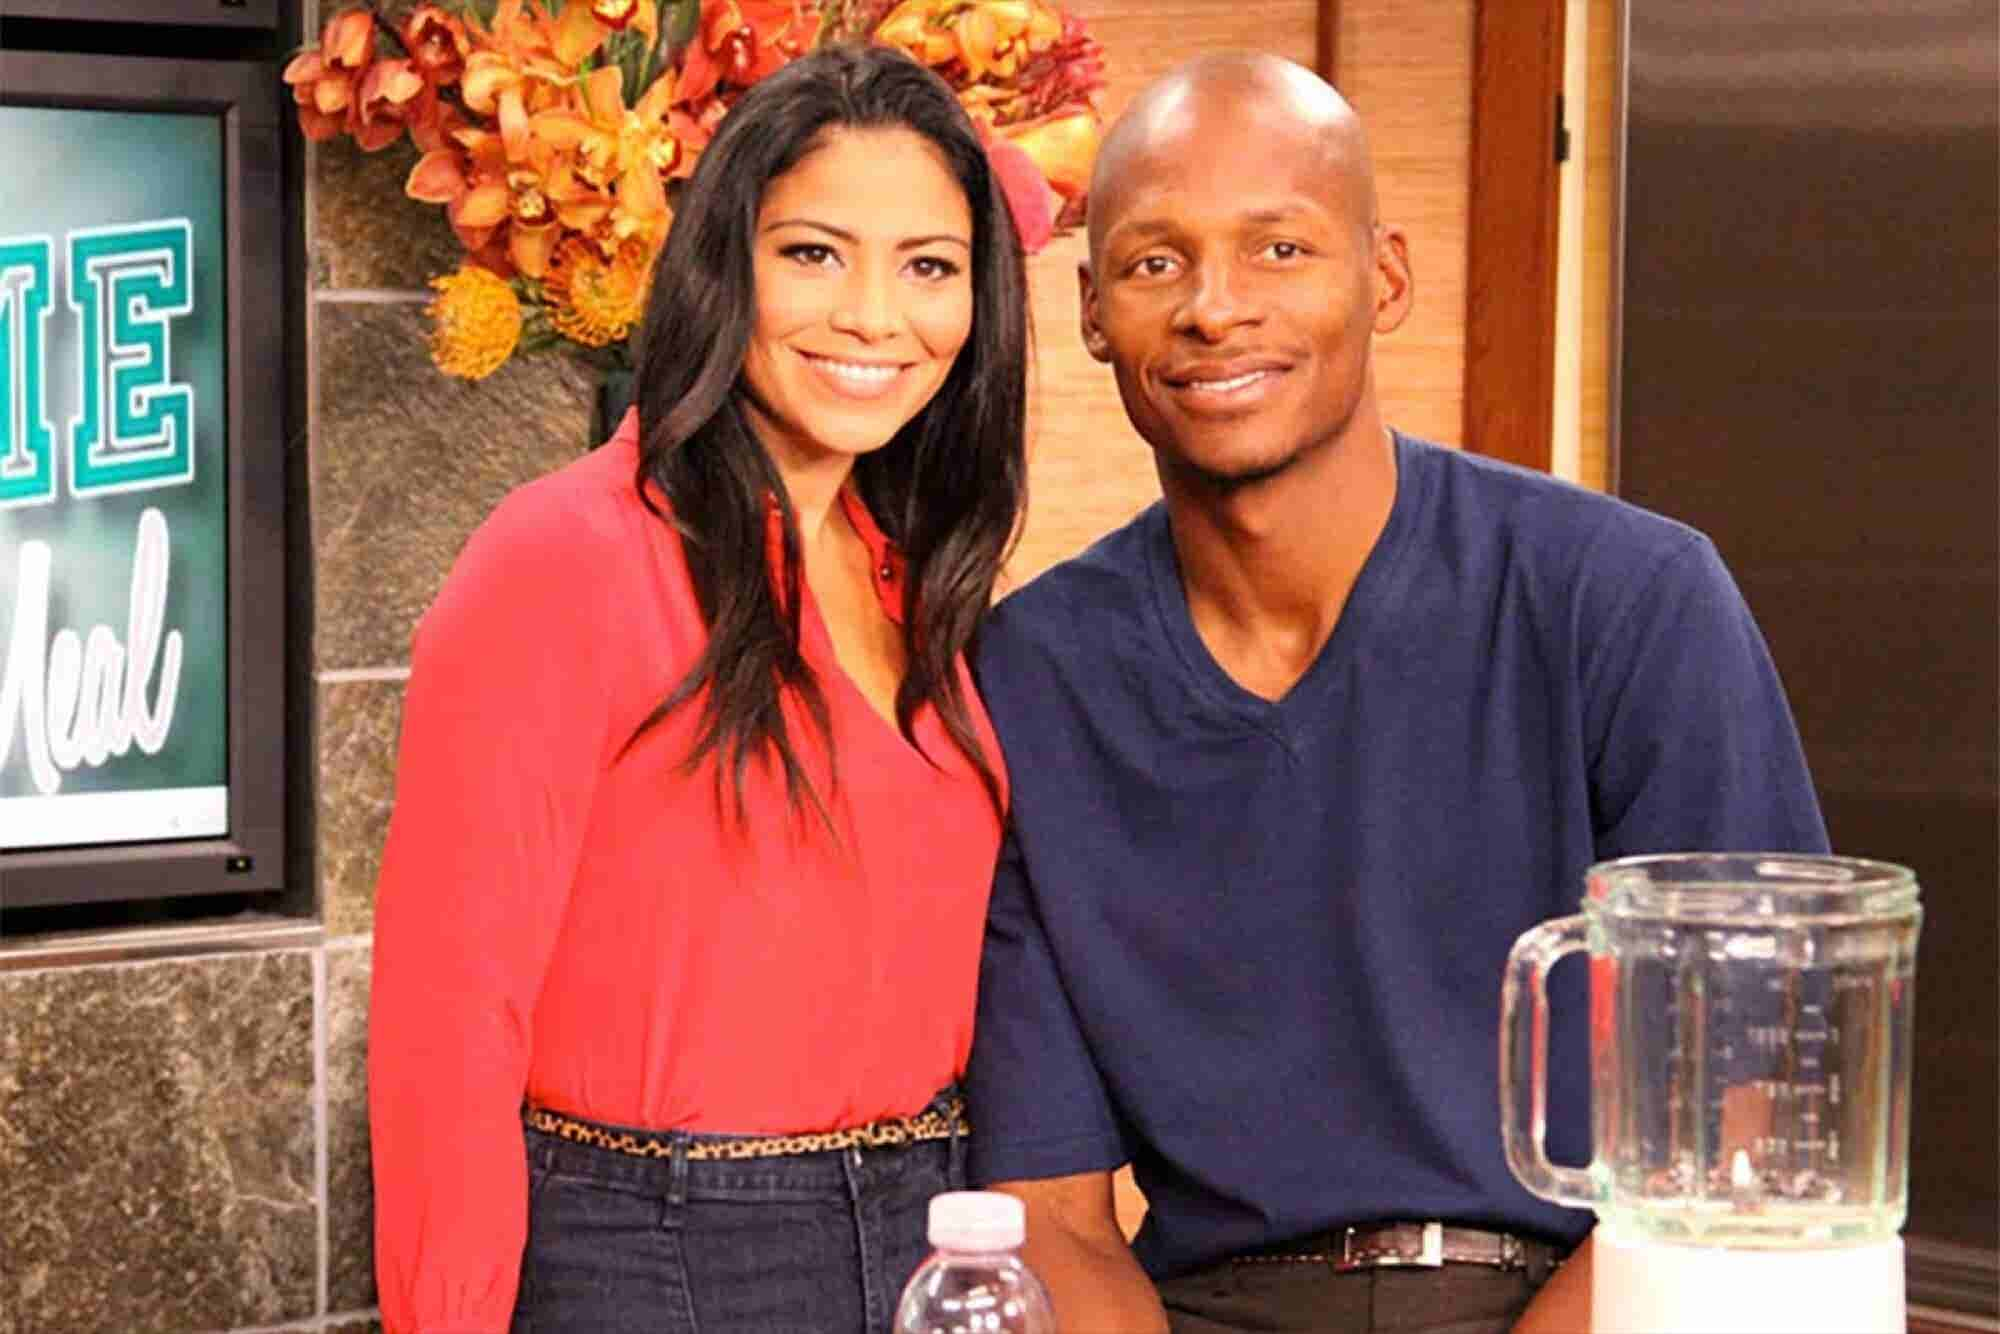 NBA All-Star Ray Allen and Wife Are Opening an Organic Fast Food Restaurant